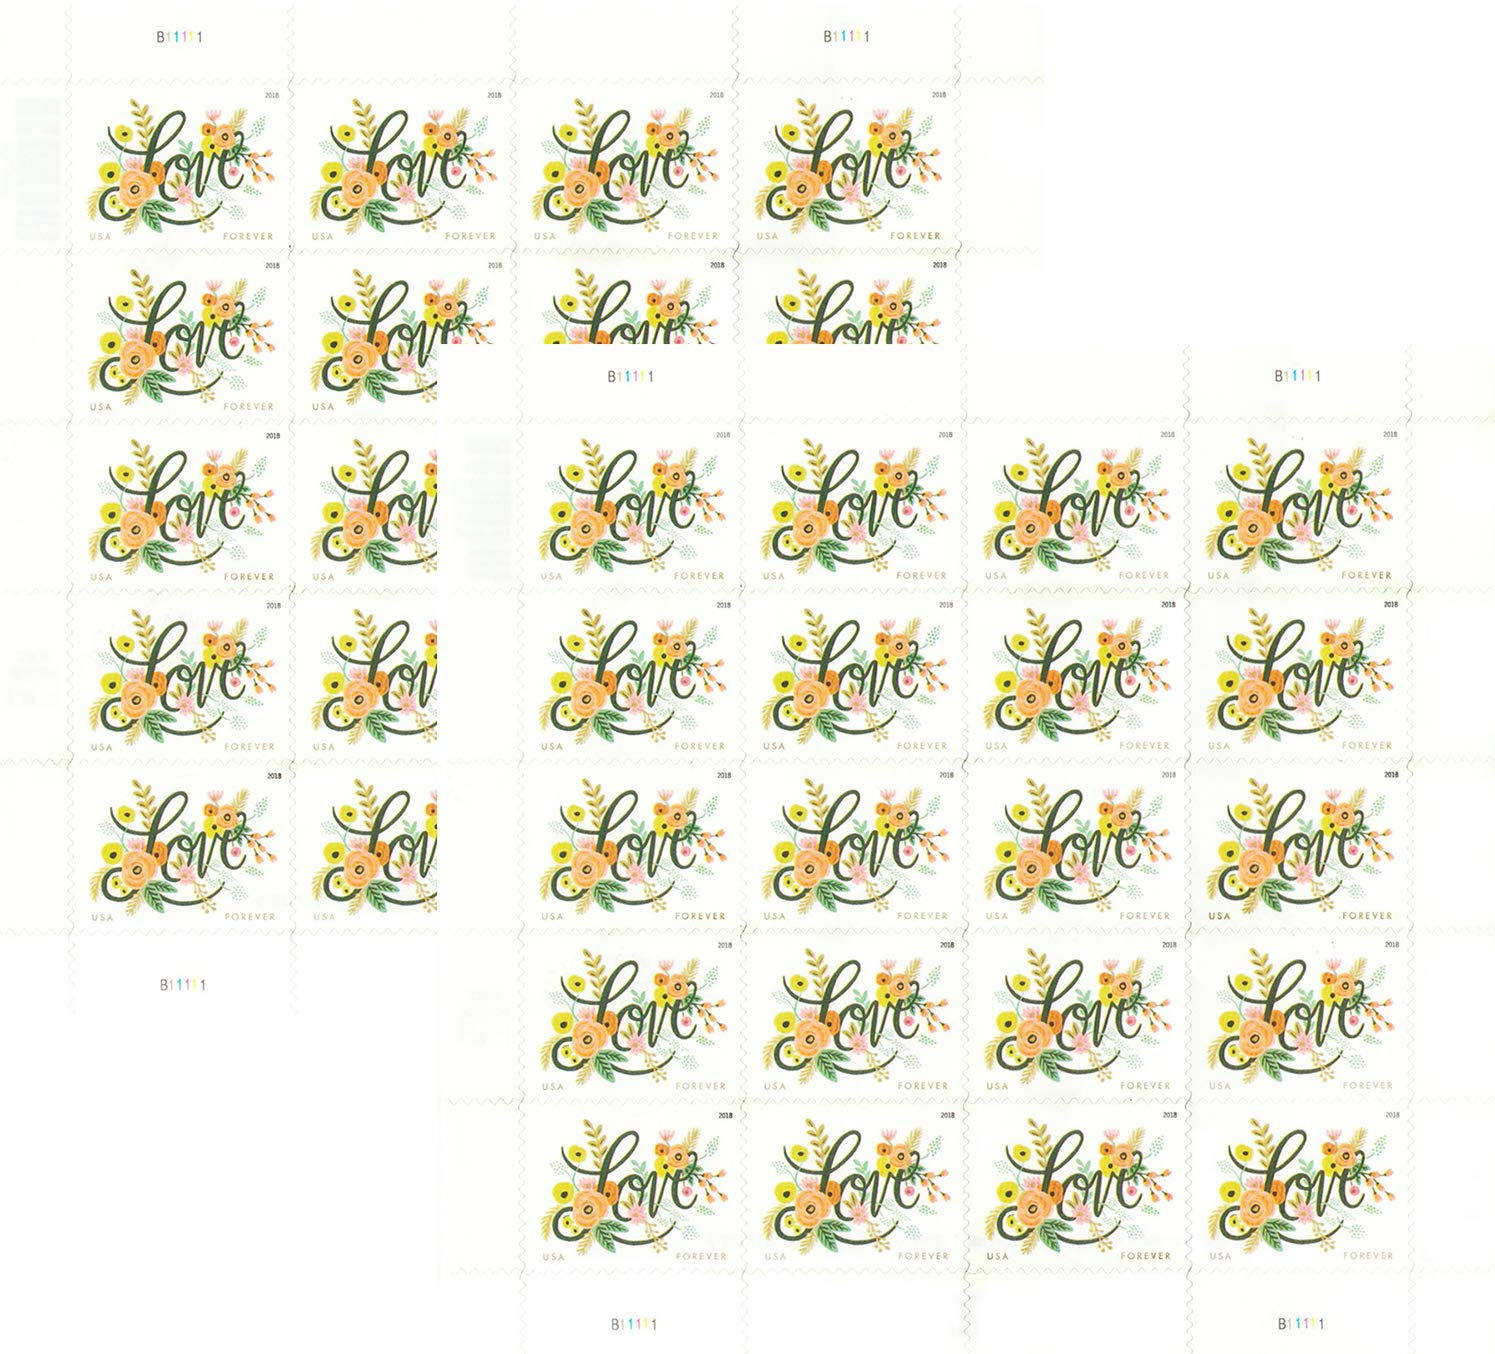 USPS Love Flourishes Forever Postage Stamps (2 Sheet of 20)